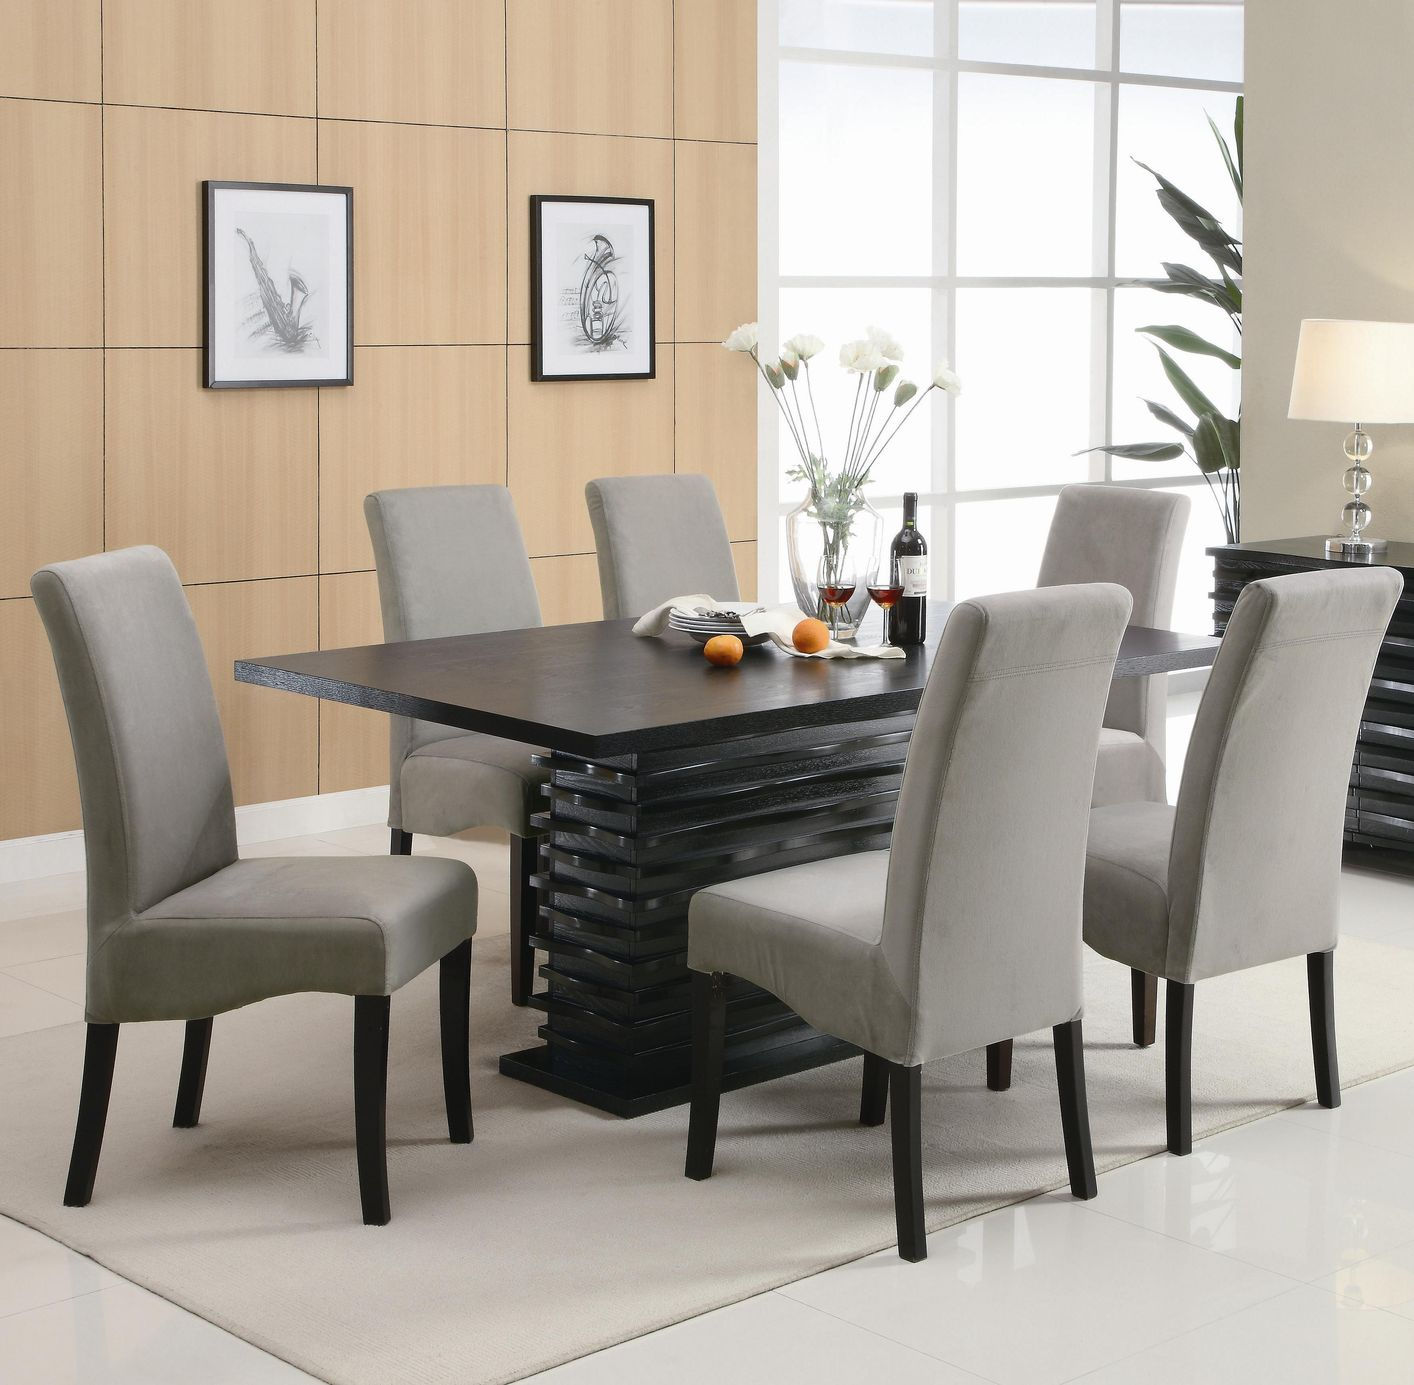 Coaster stanton 102061 102062 black wood dining table set for Black dining room set